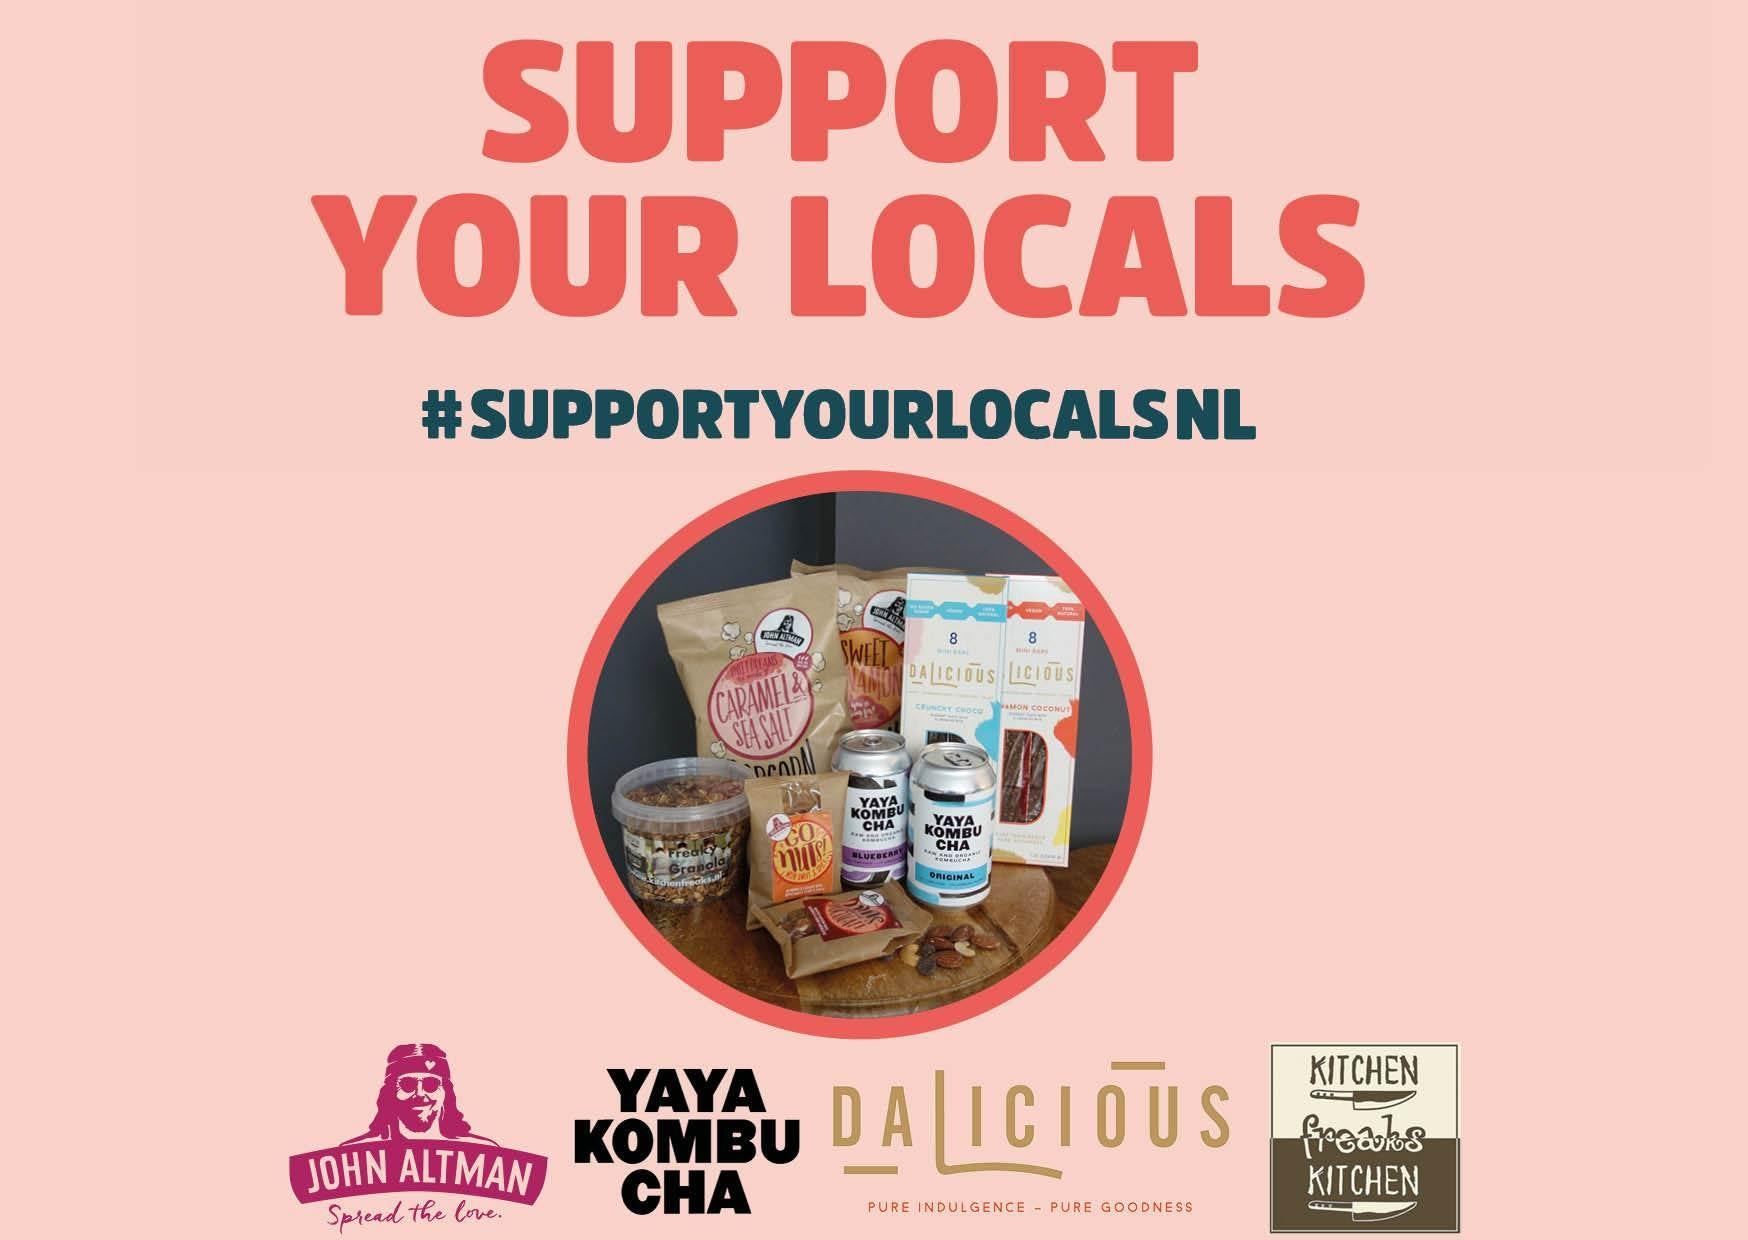 Sweet Box #supportyourlocalsNL (Verzending per post) - John Altman